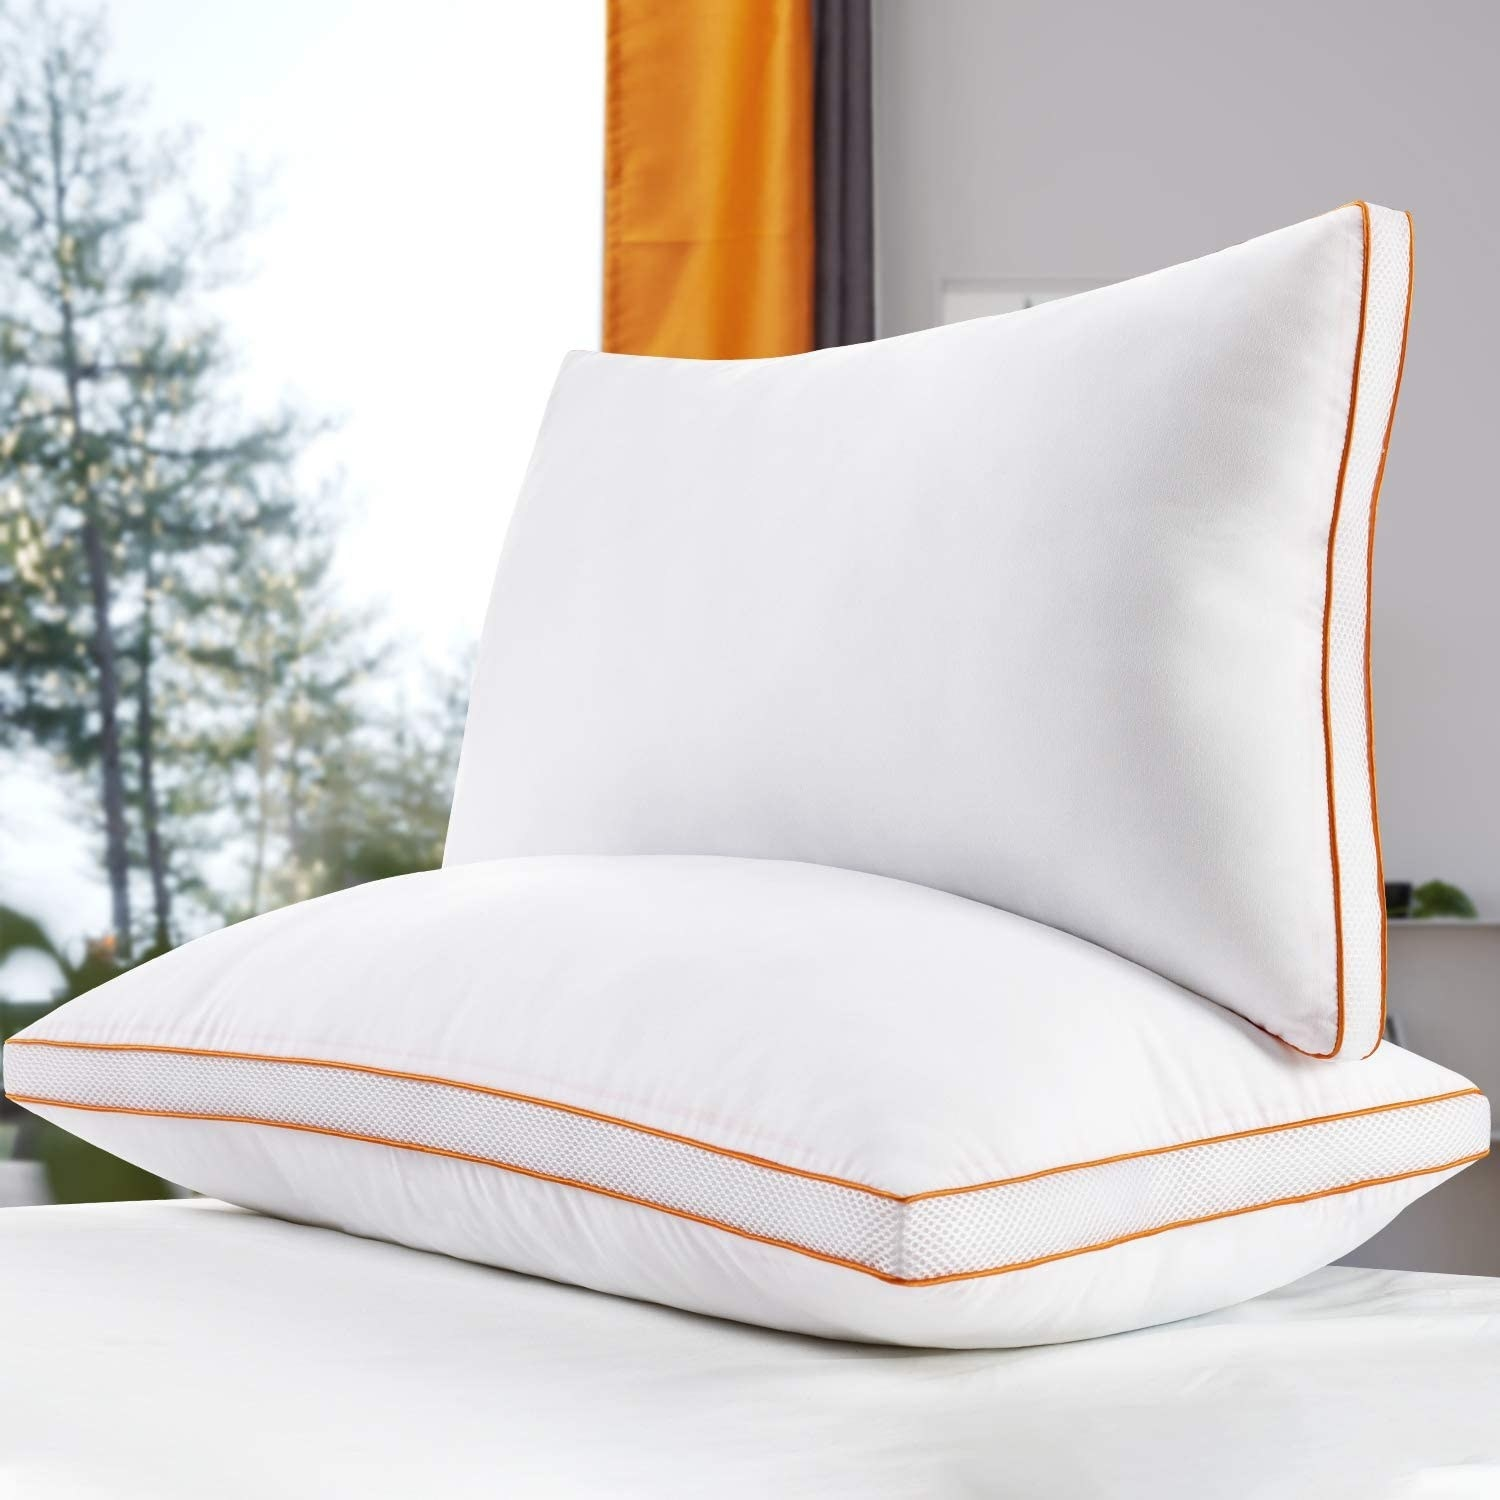 A pair of pillows stacked on top of one another with a forest in the background